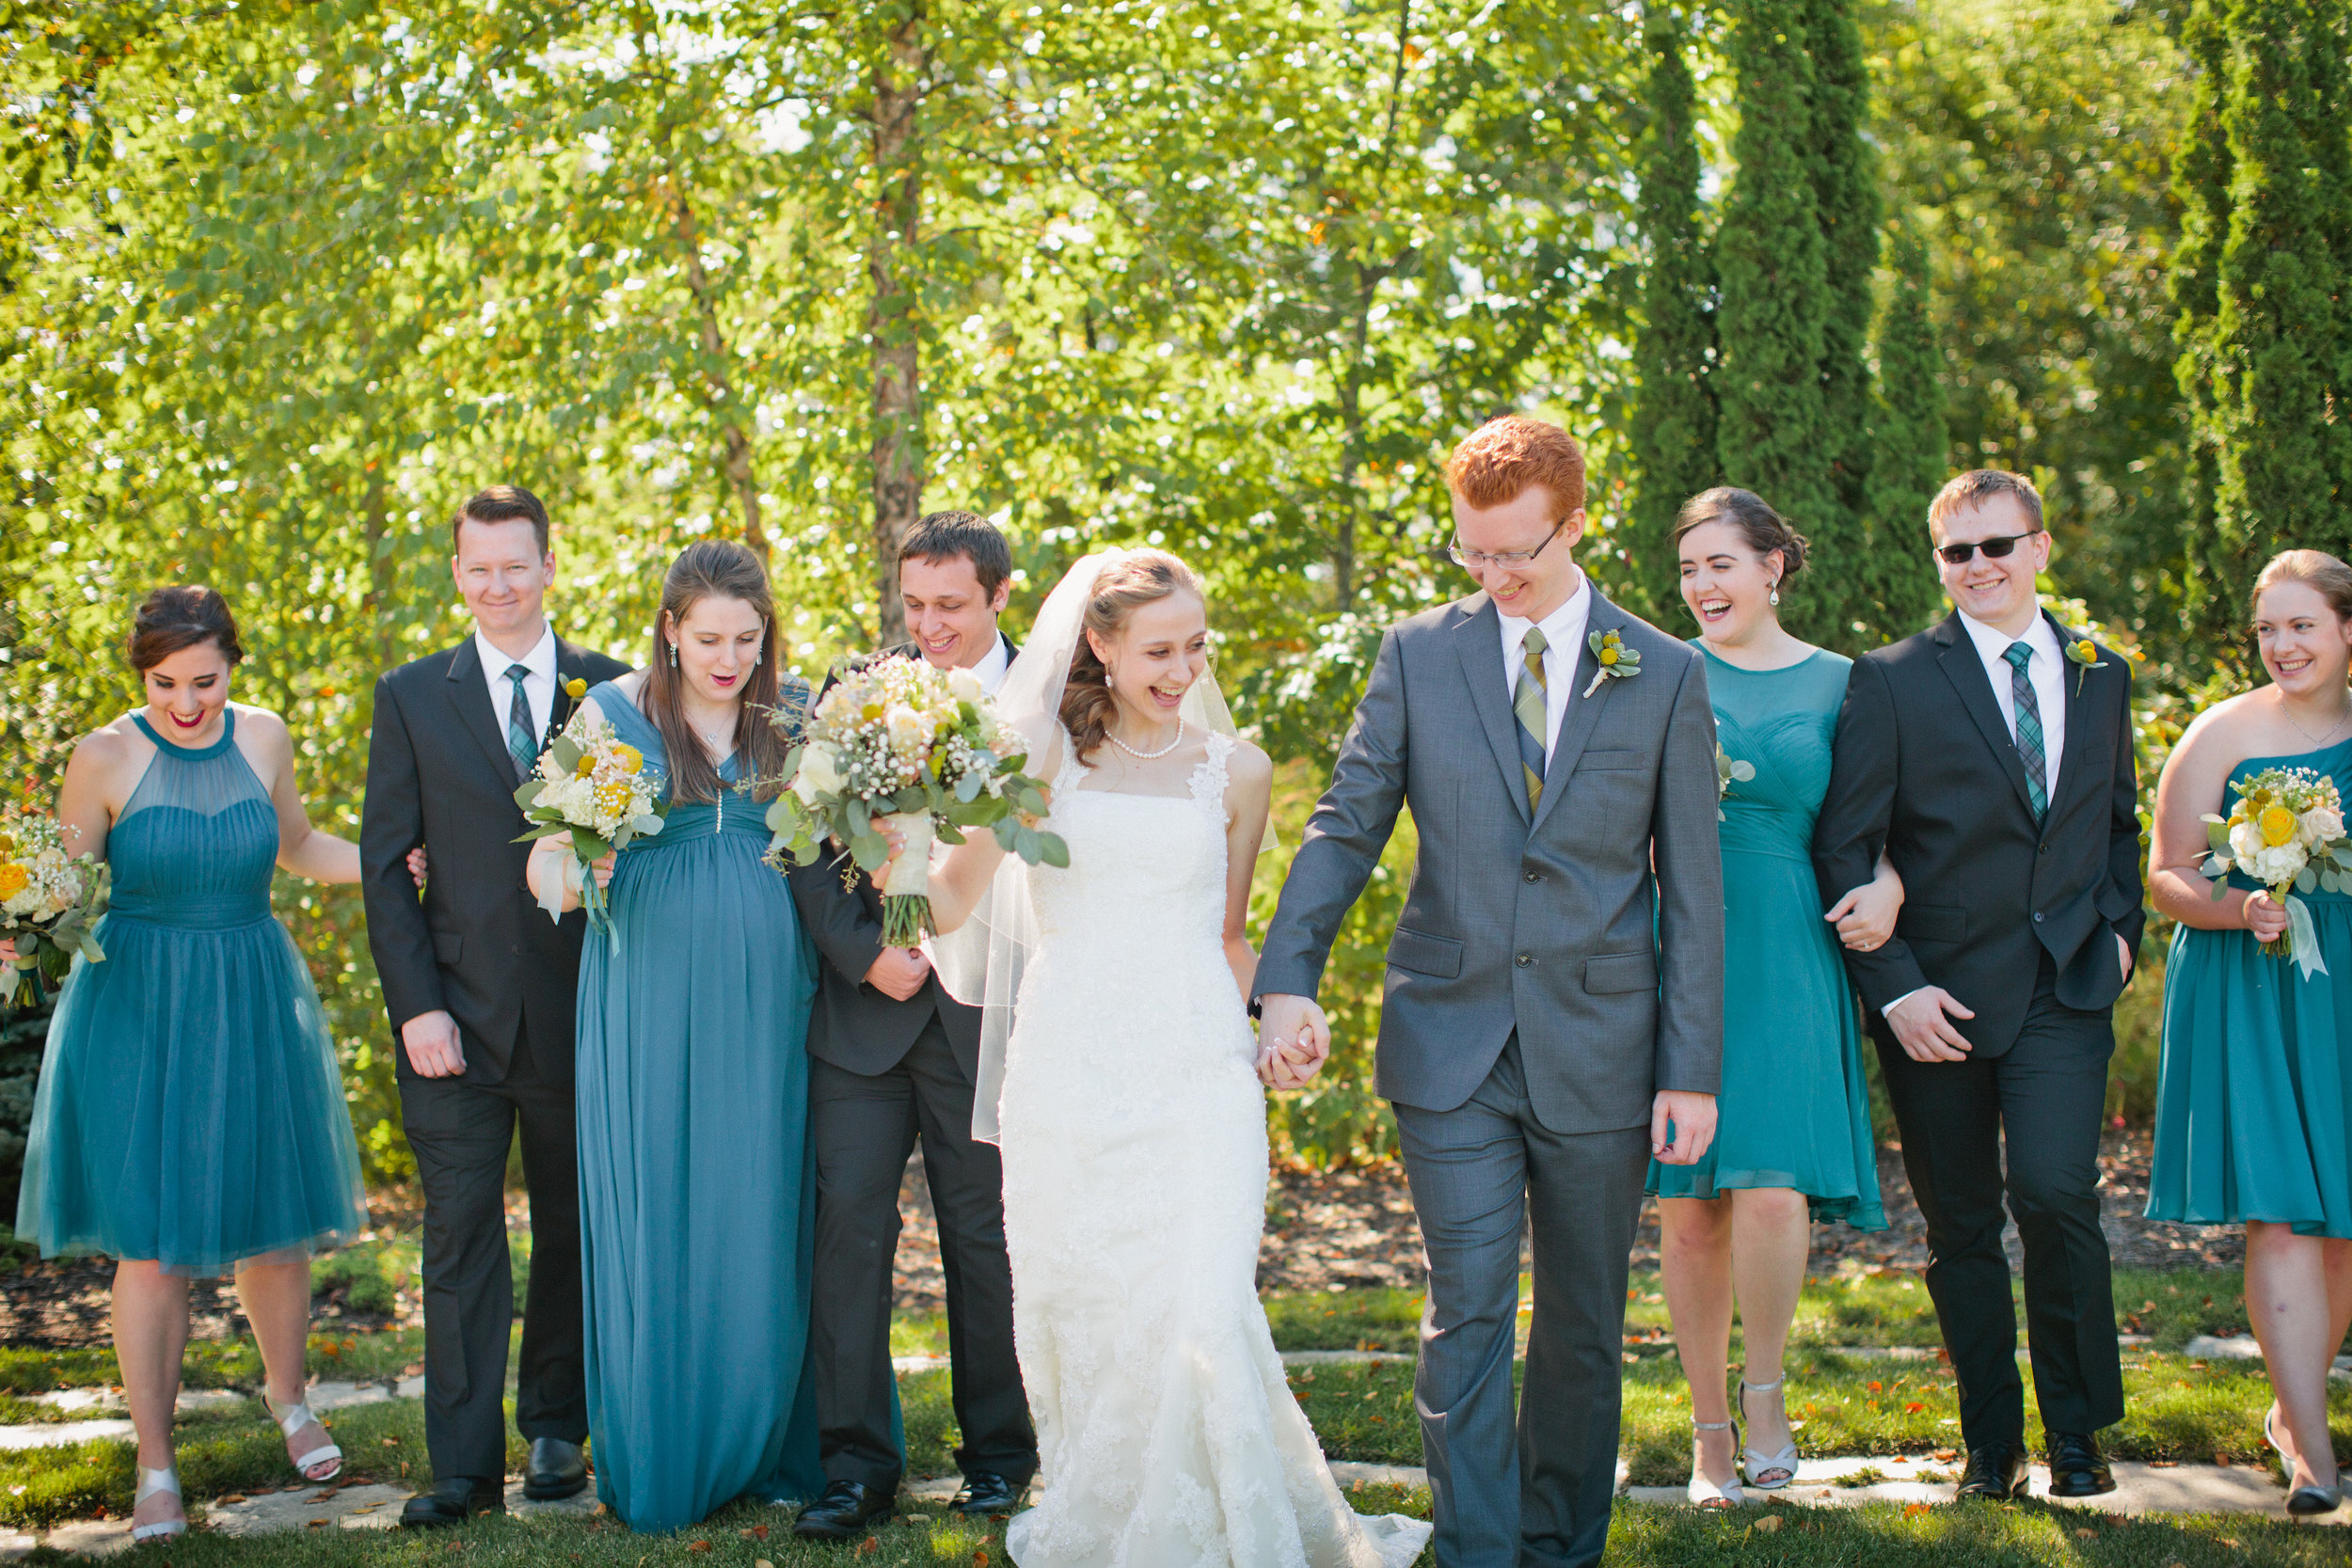 Amelia Renee is a wedding photographer who photographs in Denver and Colorado Springs